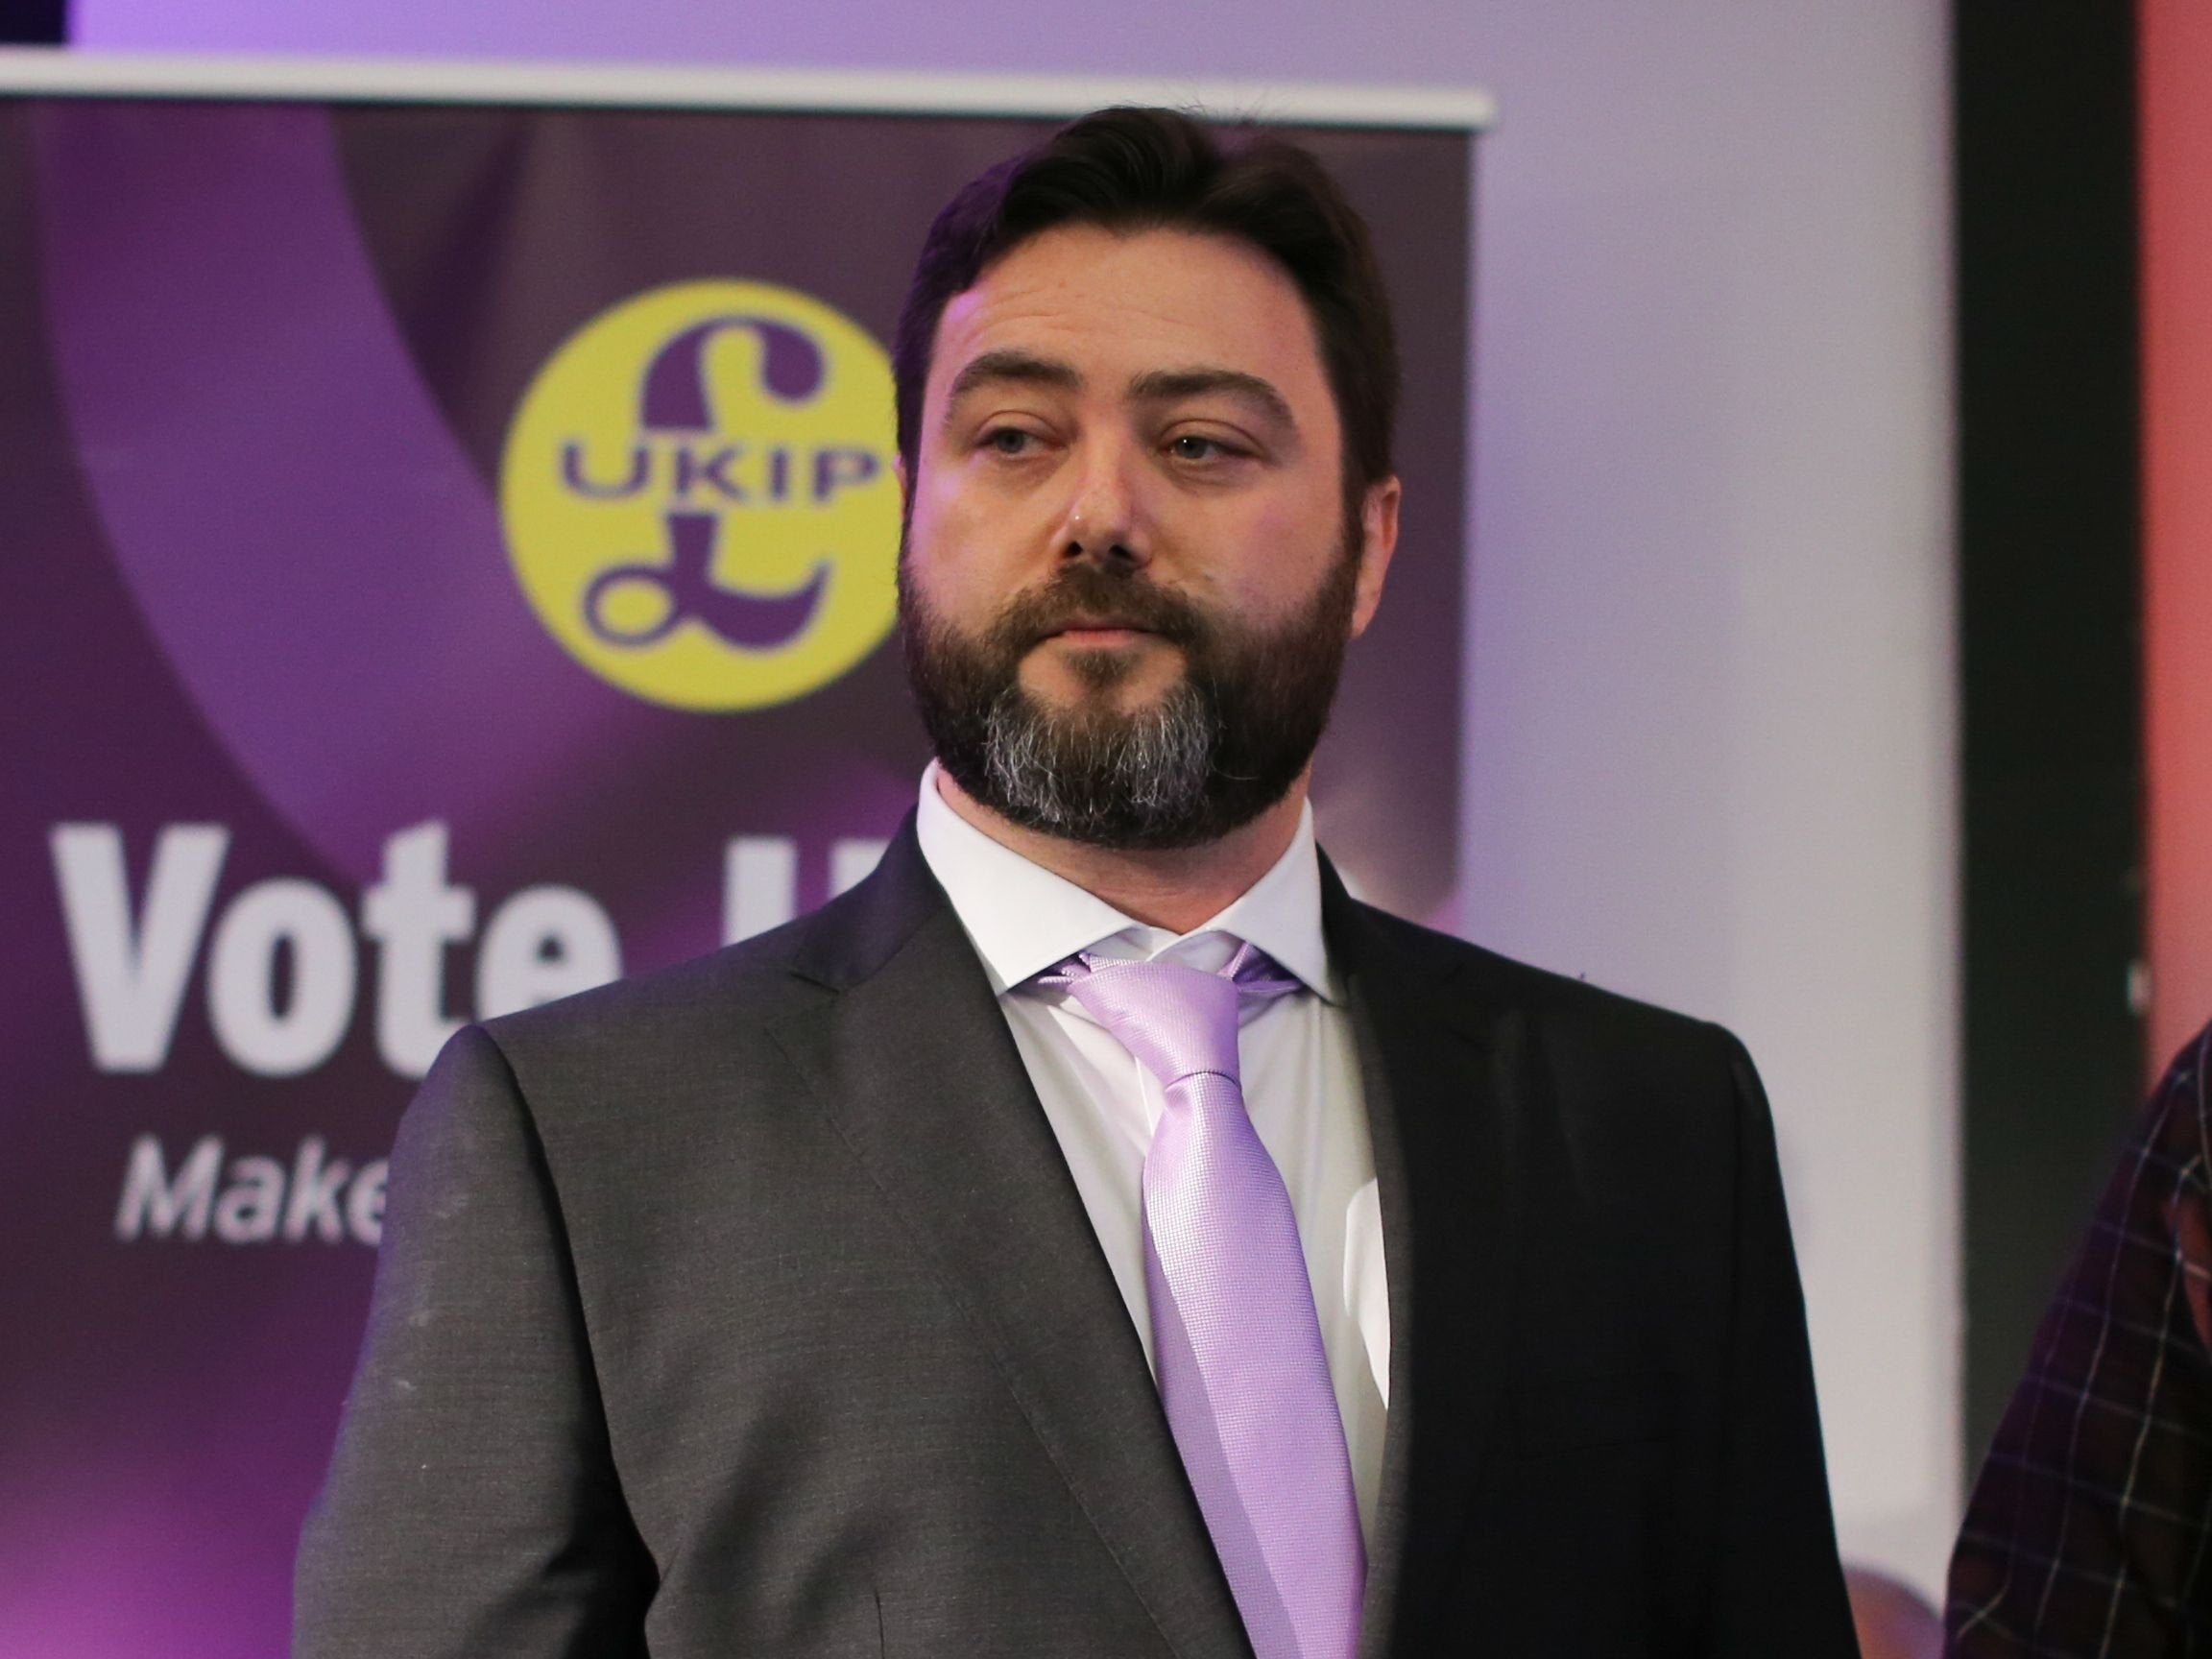 Ukip candidate Carl Benjamin defends use of N-word by saying: 'I